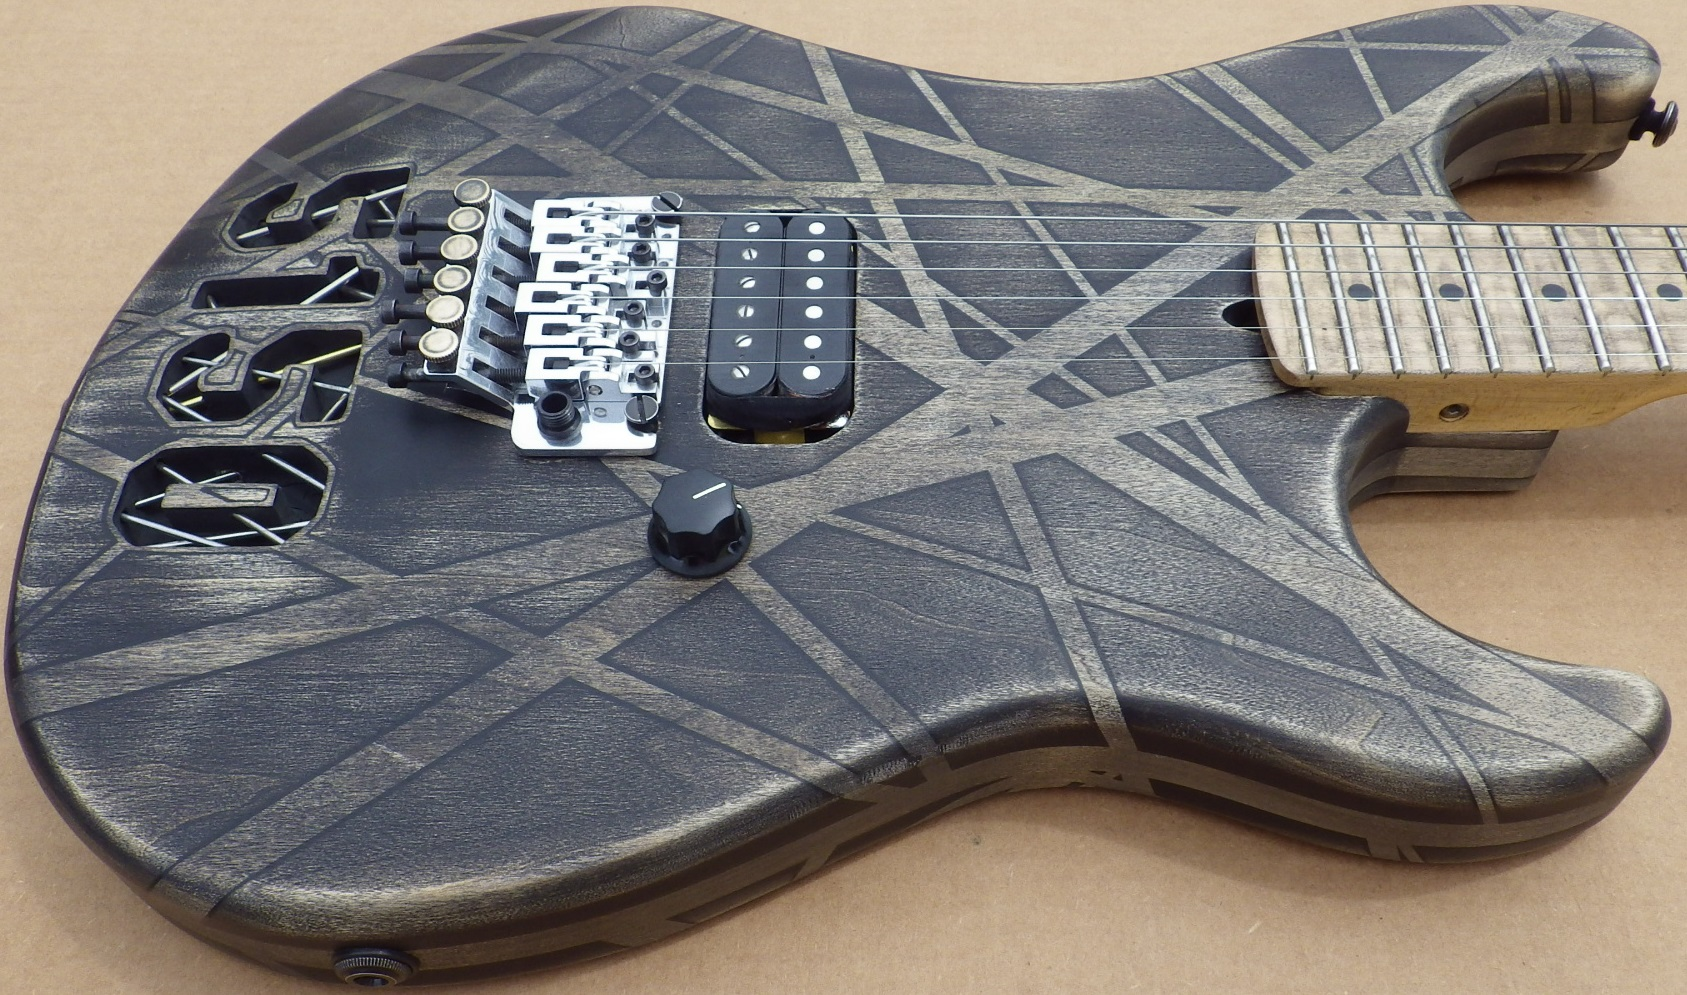 Mean Street Guitars Industrial 50 1 50 Pipeline Prototype  black pic 3.jpg